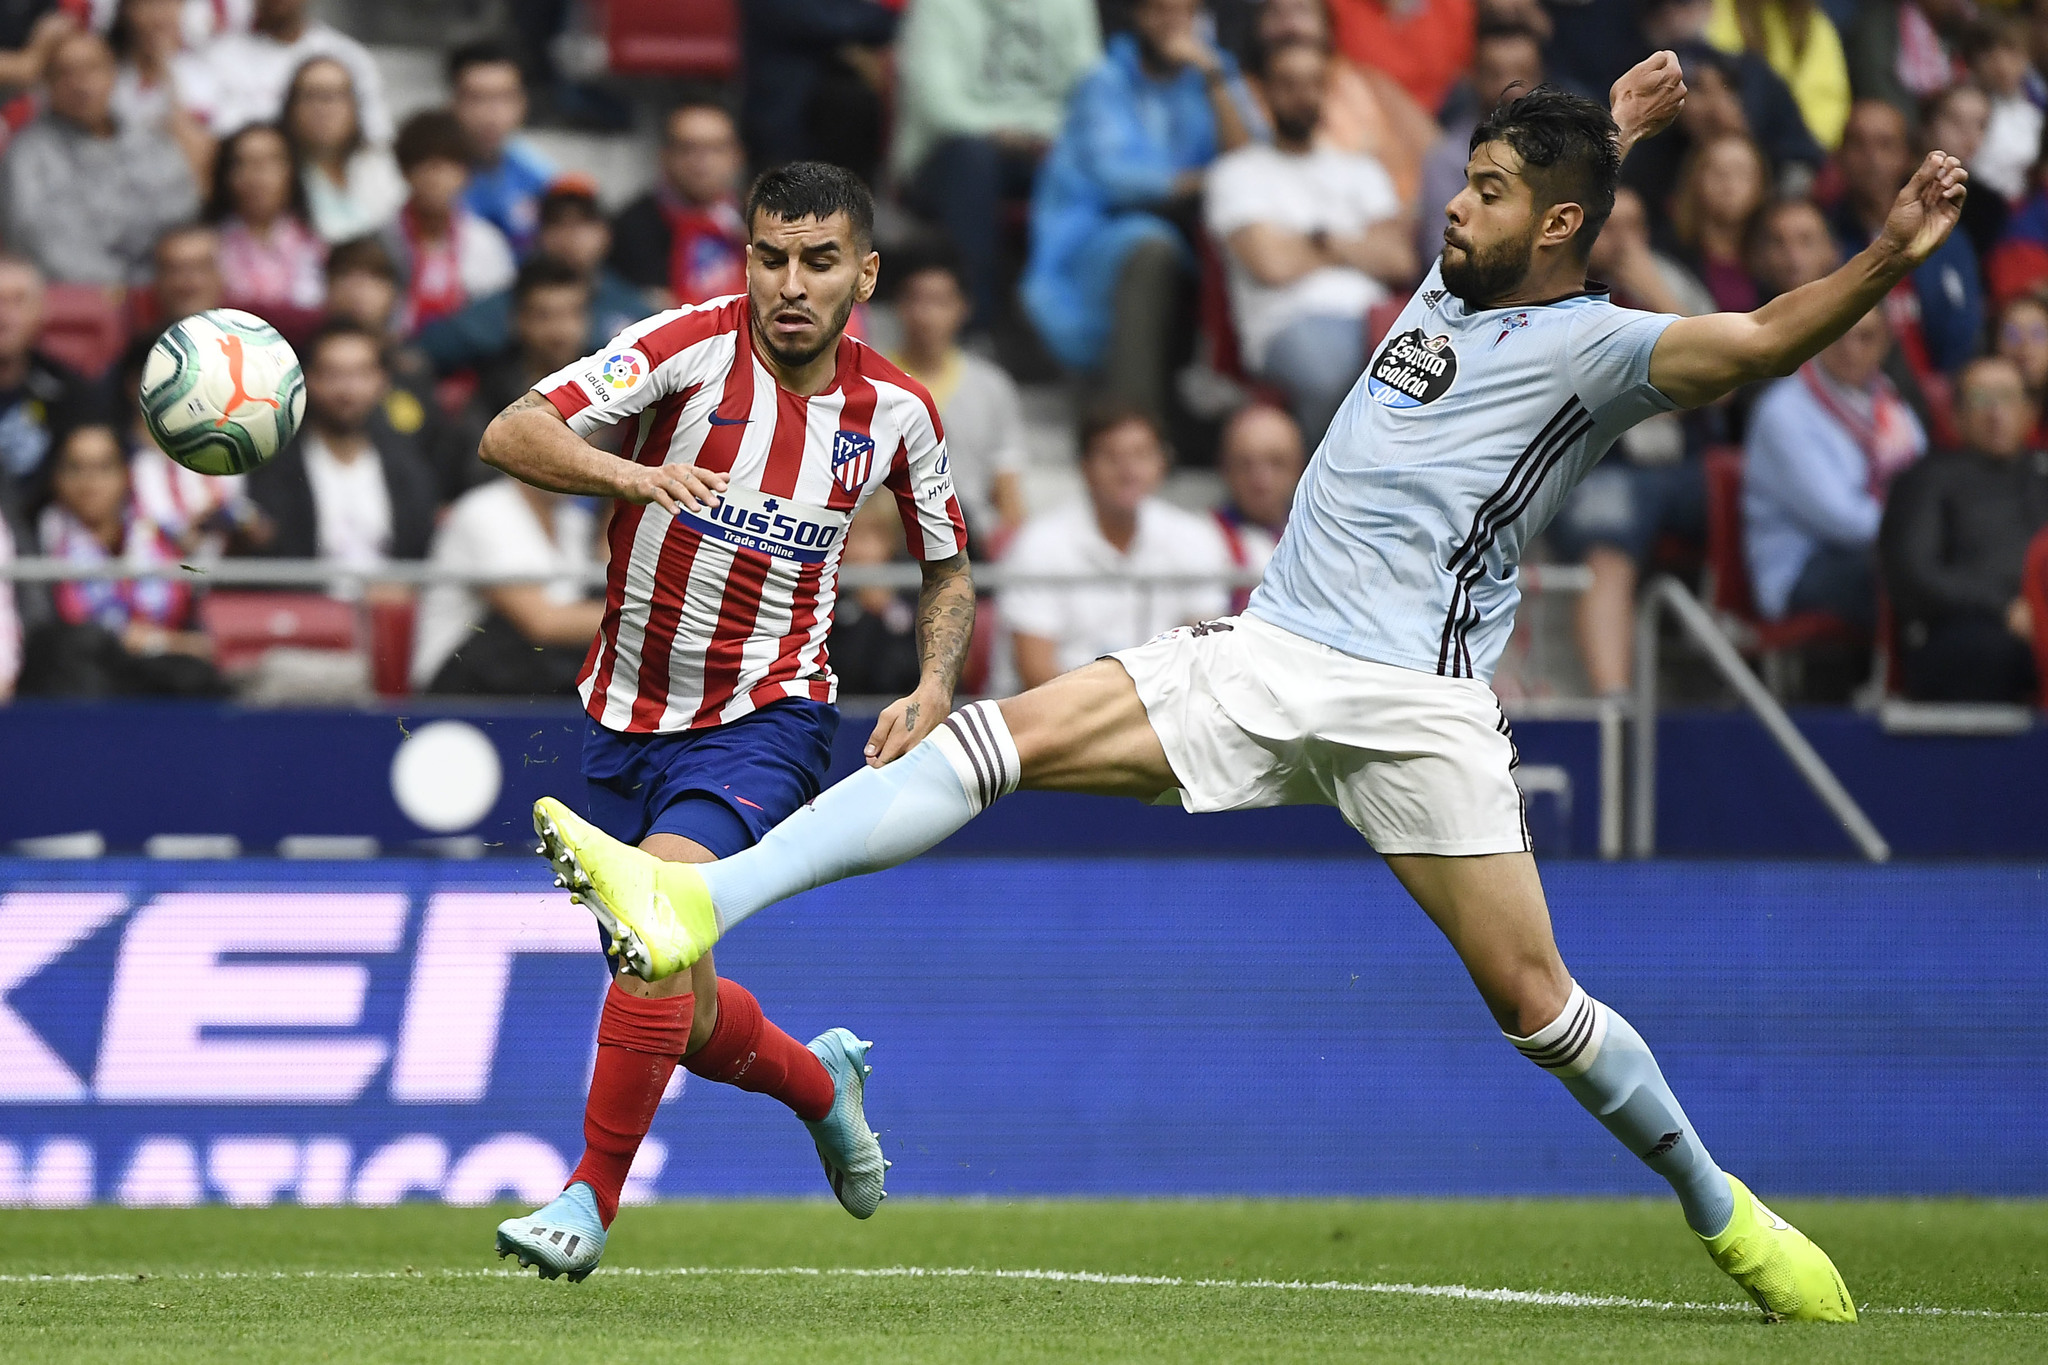 Atletico Madrids Argentine forward Angel <HIT>Correa</HIT> (L) vies with Celta Vigos Mexican defender Nestor Araujo during the Spanish league football match between Club Atletico de Madrid and RC Celta de Vigo at the Wanda Metropolitano stadium in Madrid on September 21, 2019. (Photo by PIERRE-PHILIPPE MARCOU / AFP)